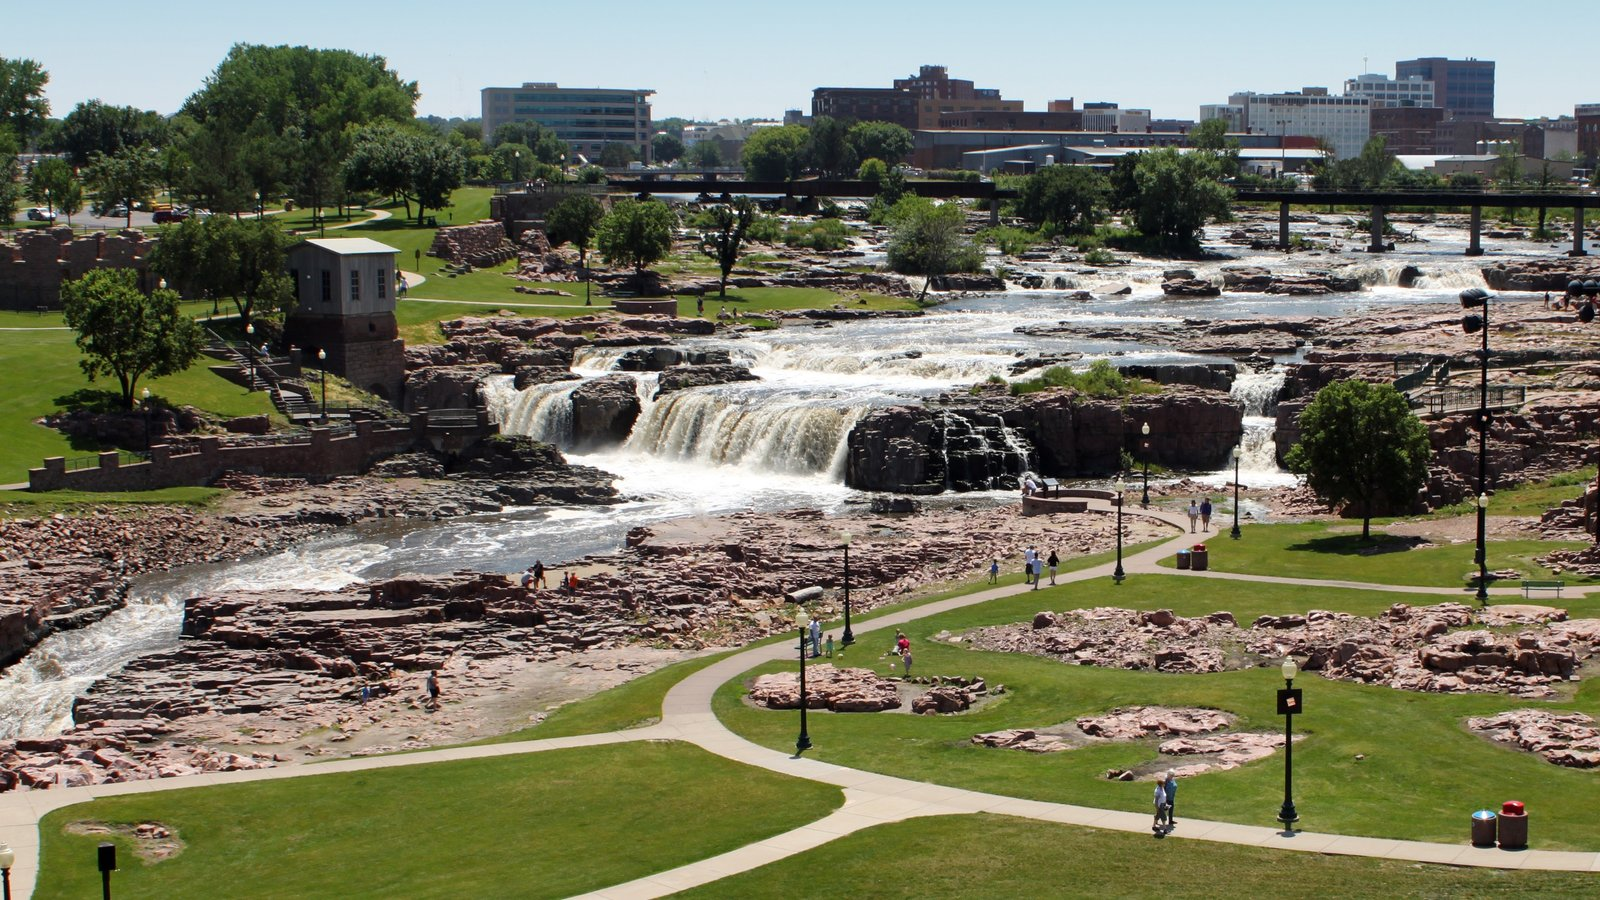 sioux falls Sanford health's usd medical center located in sioux falls, sd is the largest medical center providing exceptional and innovative care close to home for thousands of people.